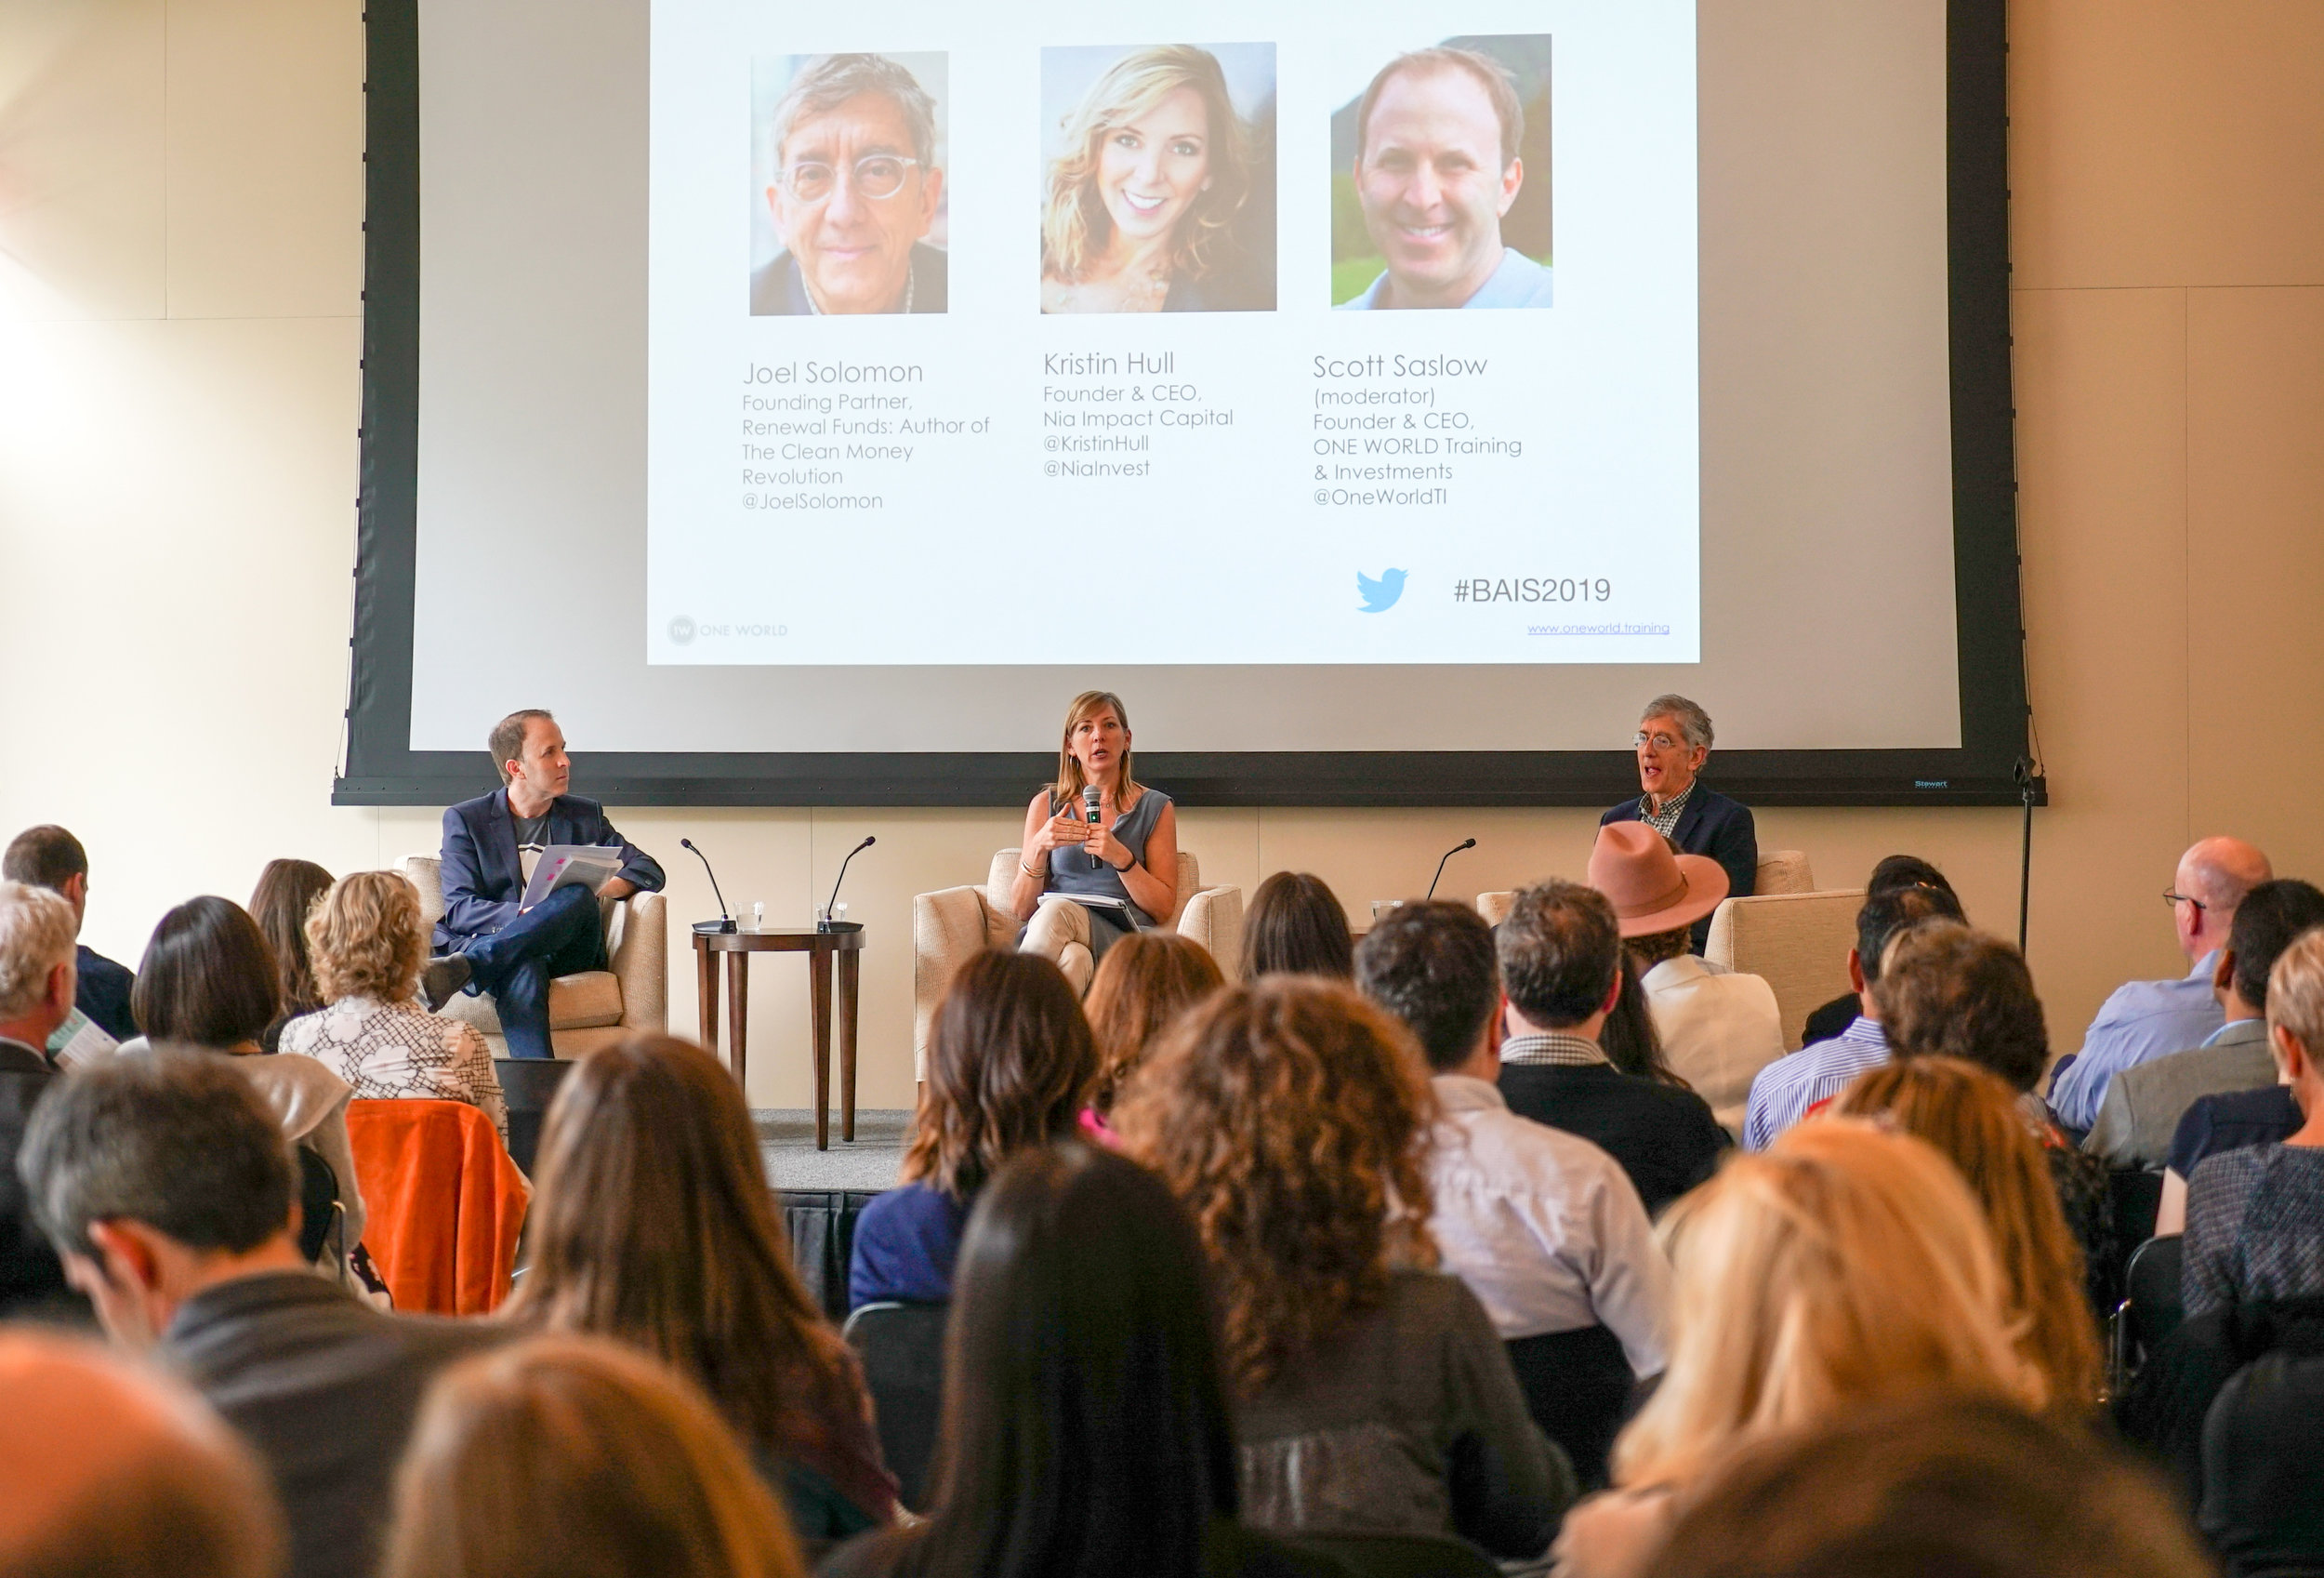 ONE WORLD founder Scott Saslow moderates a conversation with Kristin Hull, founder and CEO of NIA Capital and Joel Solomon, founder of Renewal Funds.